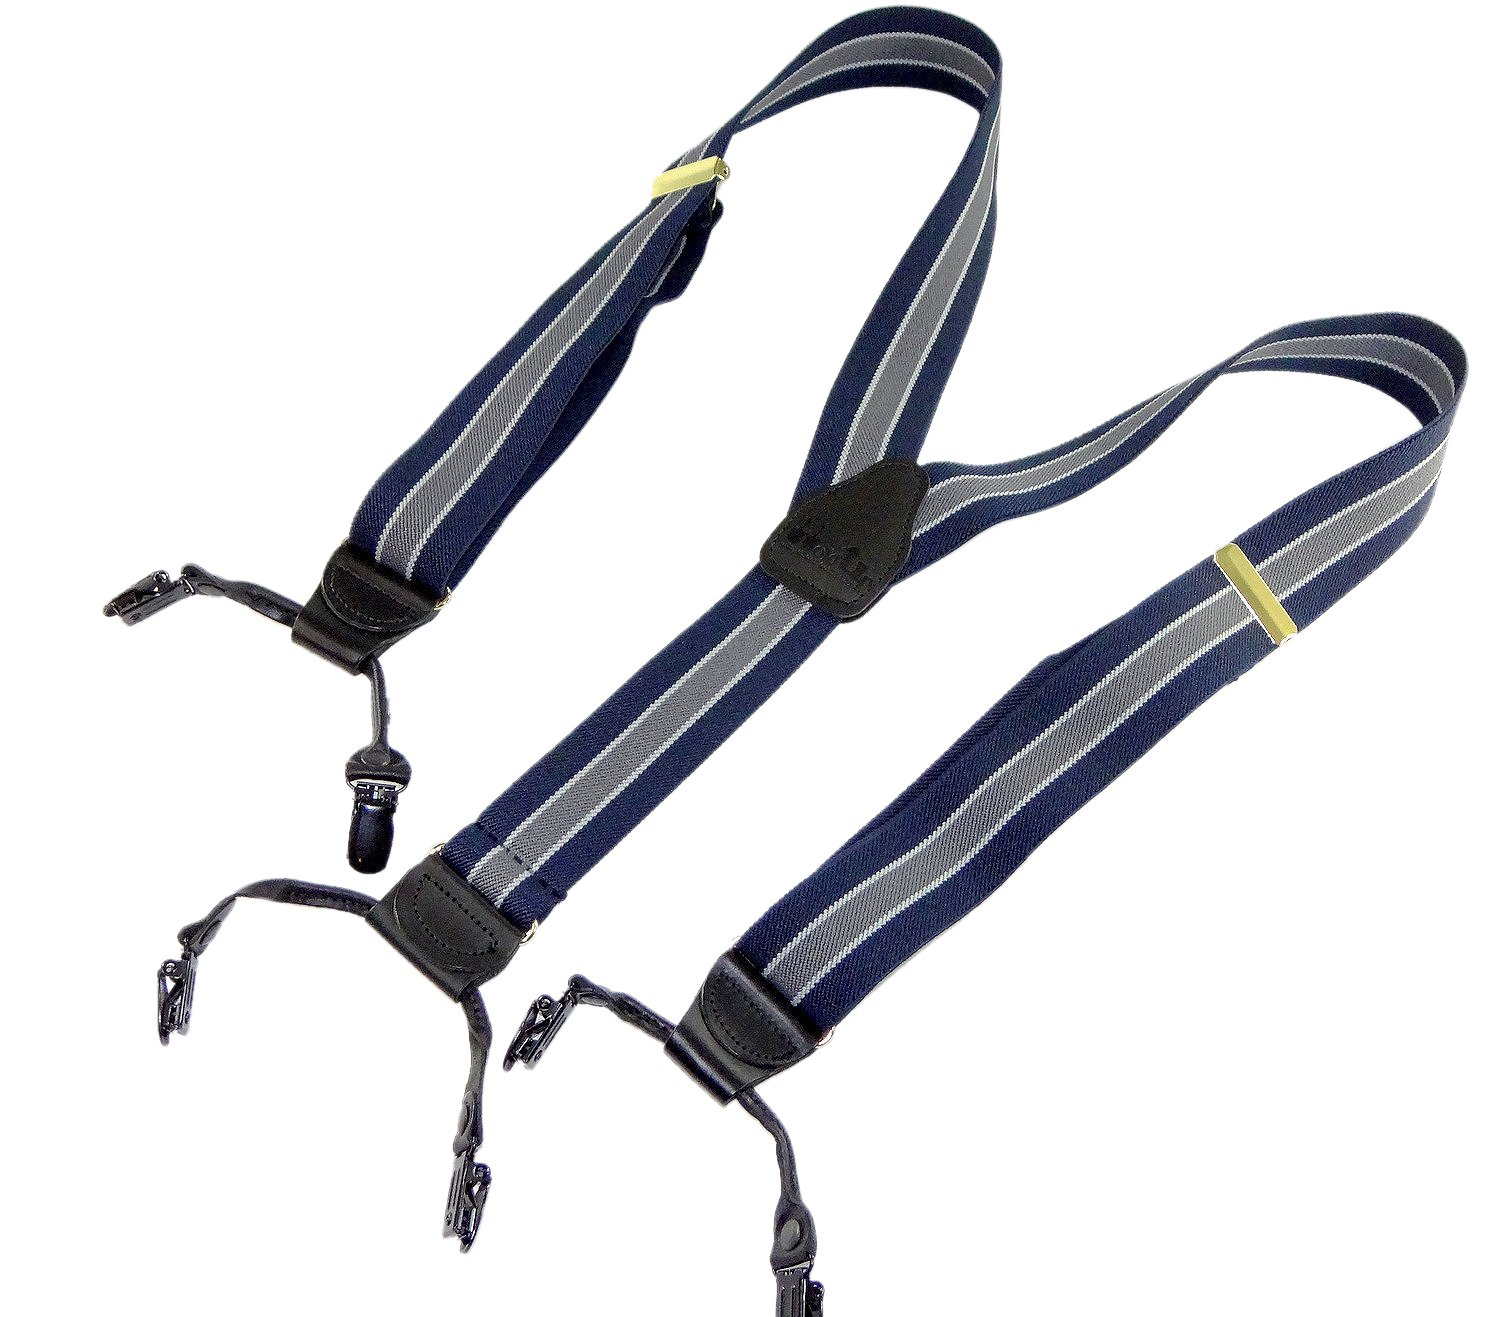 Hold-Ups Double-up Style Navy Blue with Gray and White Striped dressy suspenders